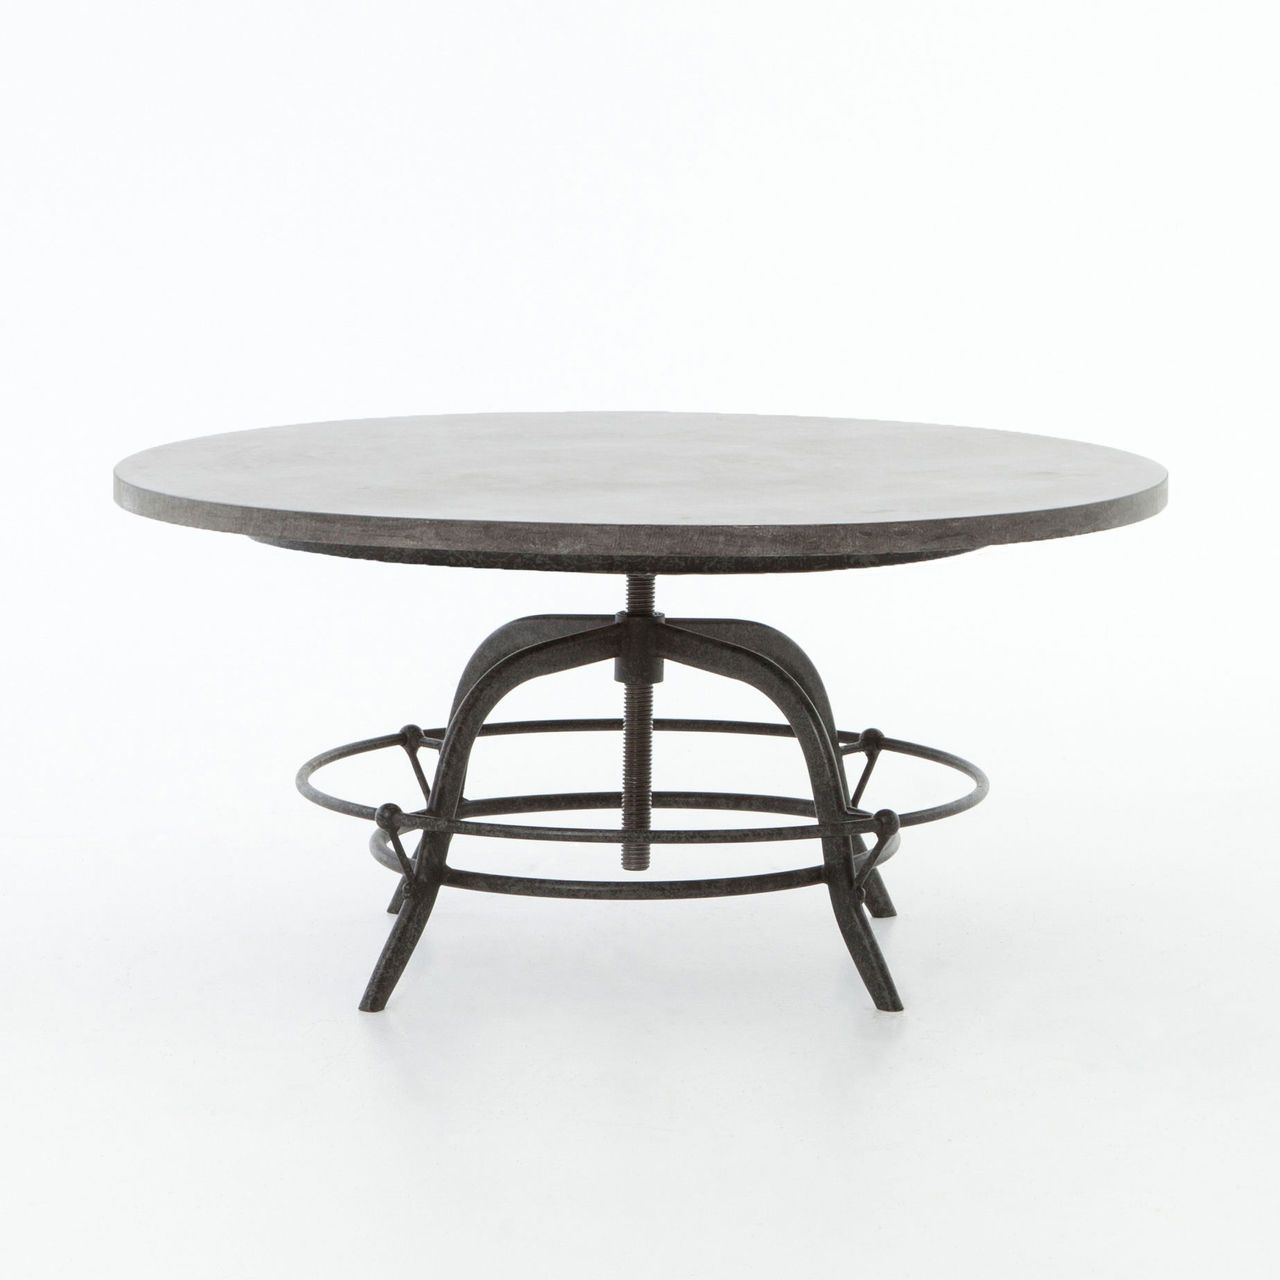 French Industrial Bluestone Top Round Crank Coffee Table #frenchindustrial